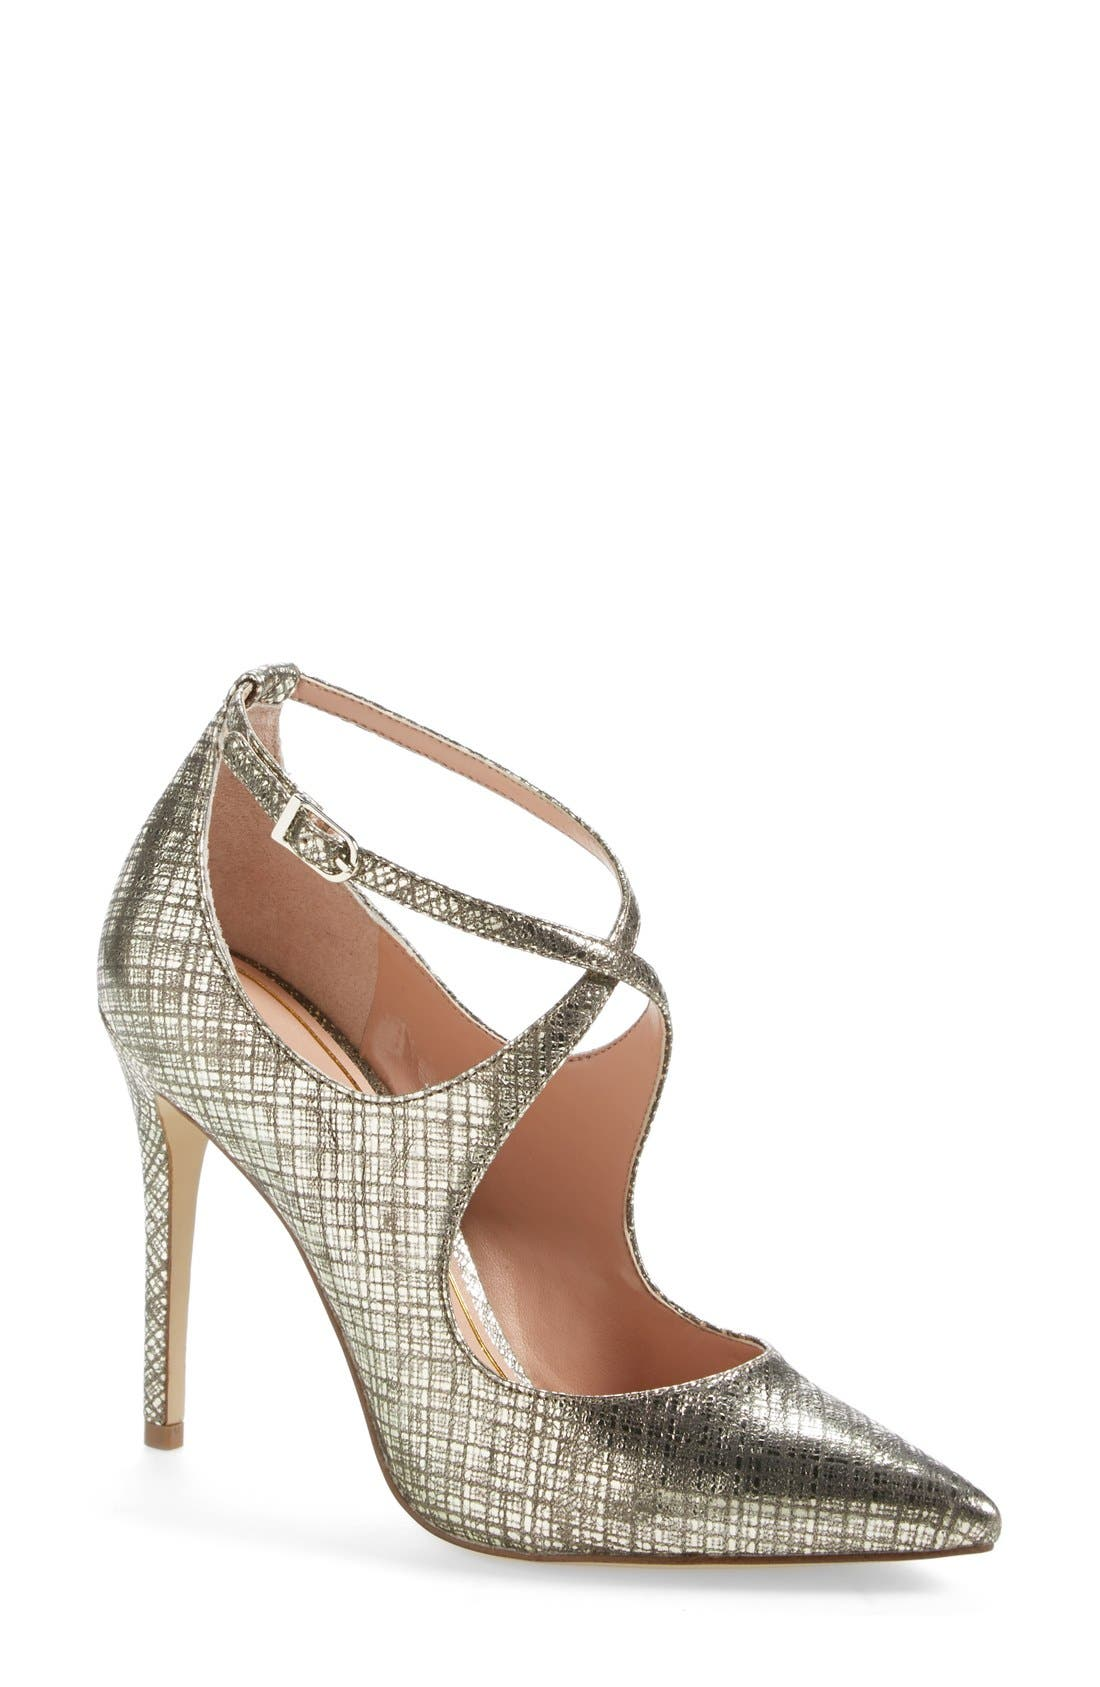 Alternate Image 1 Selected - Enzo Angiolini 'Finton' Leather Pointy Toe Pump (Women)